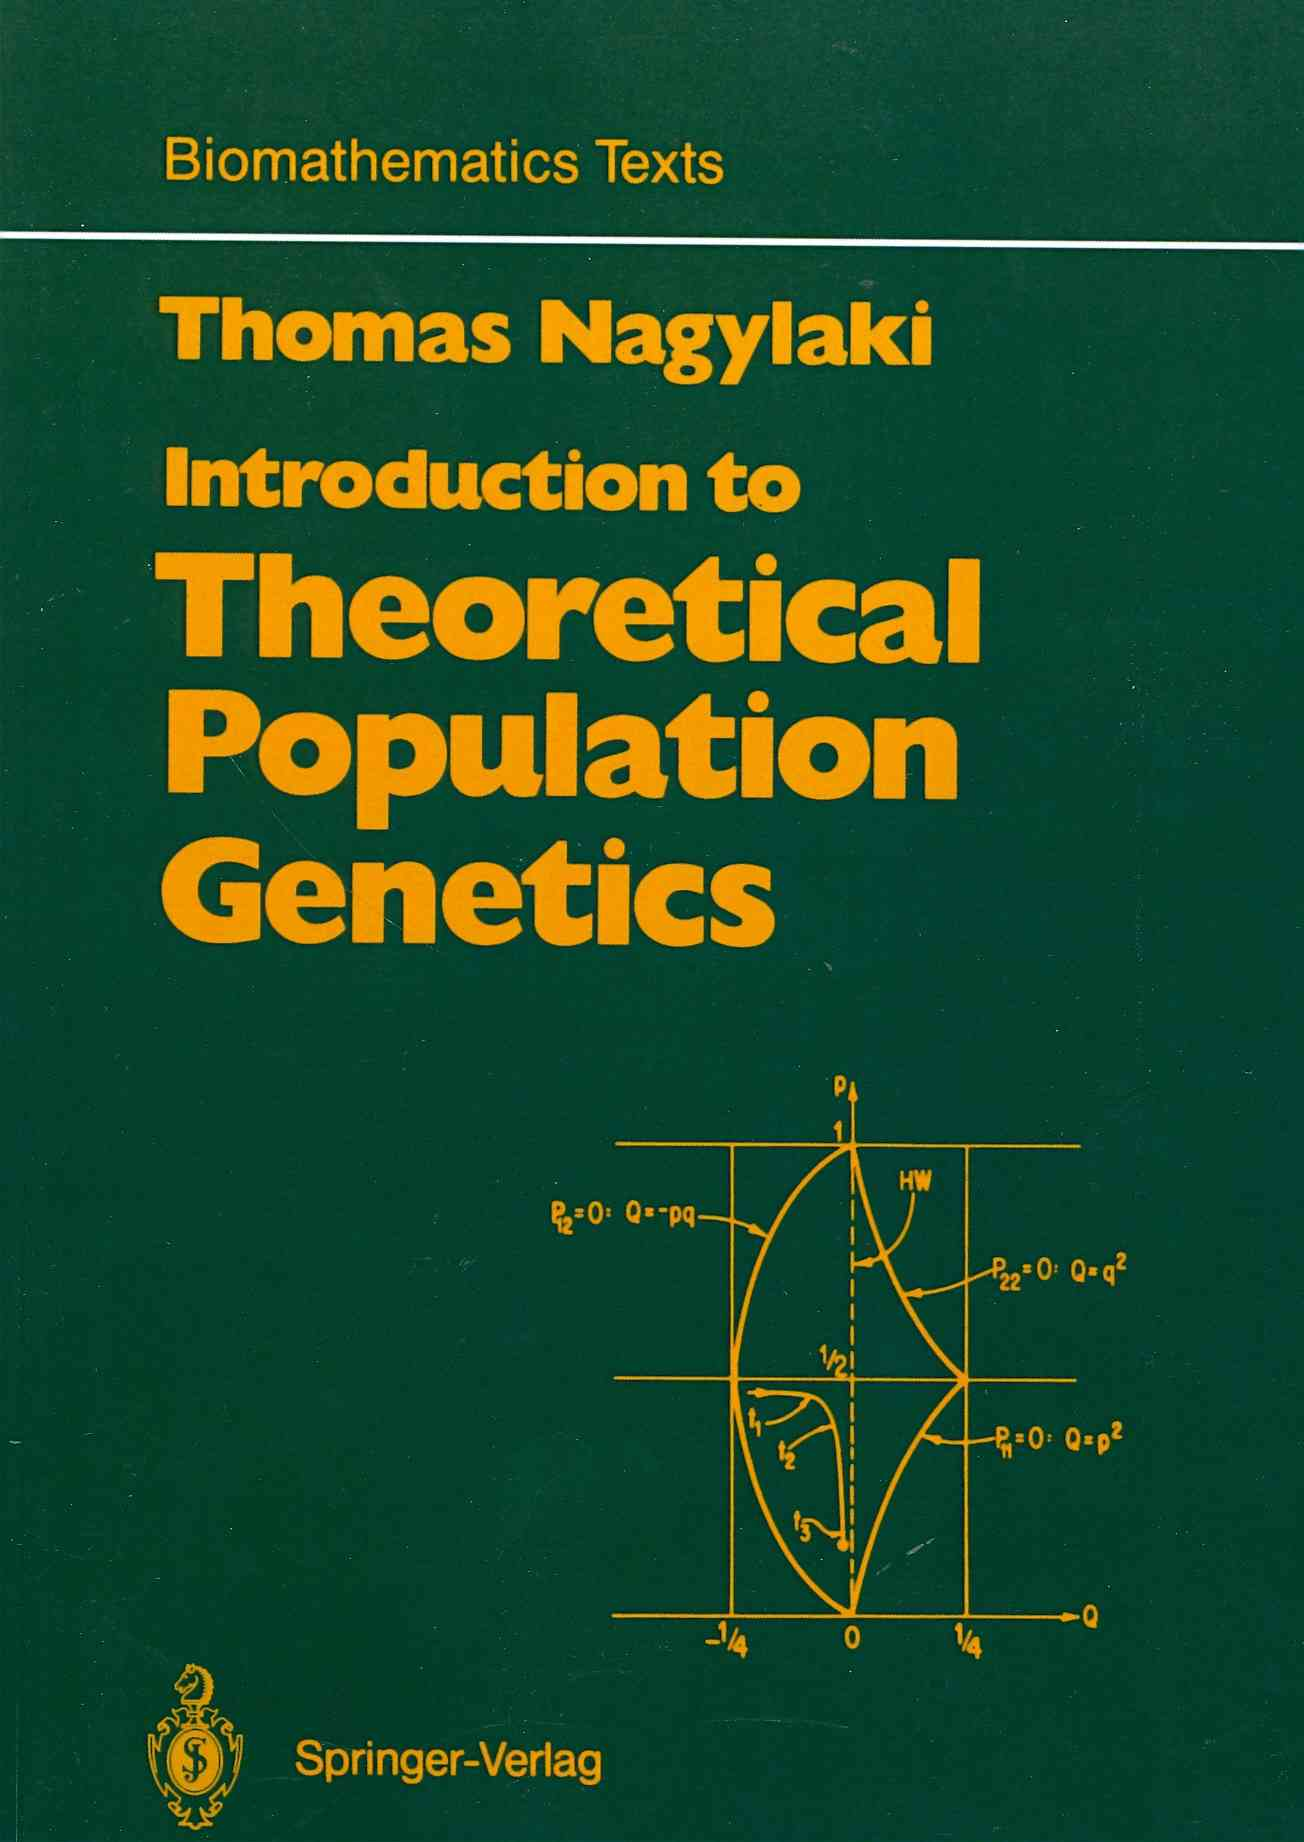 Introduction to Theoretical Population Genetics By Nagylaki, Thomas